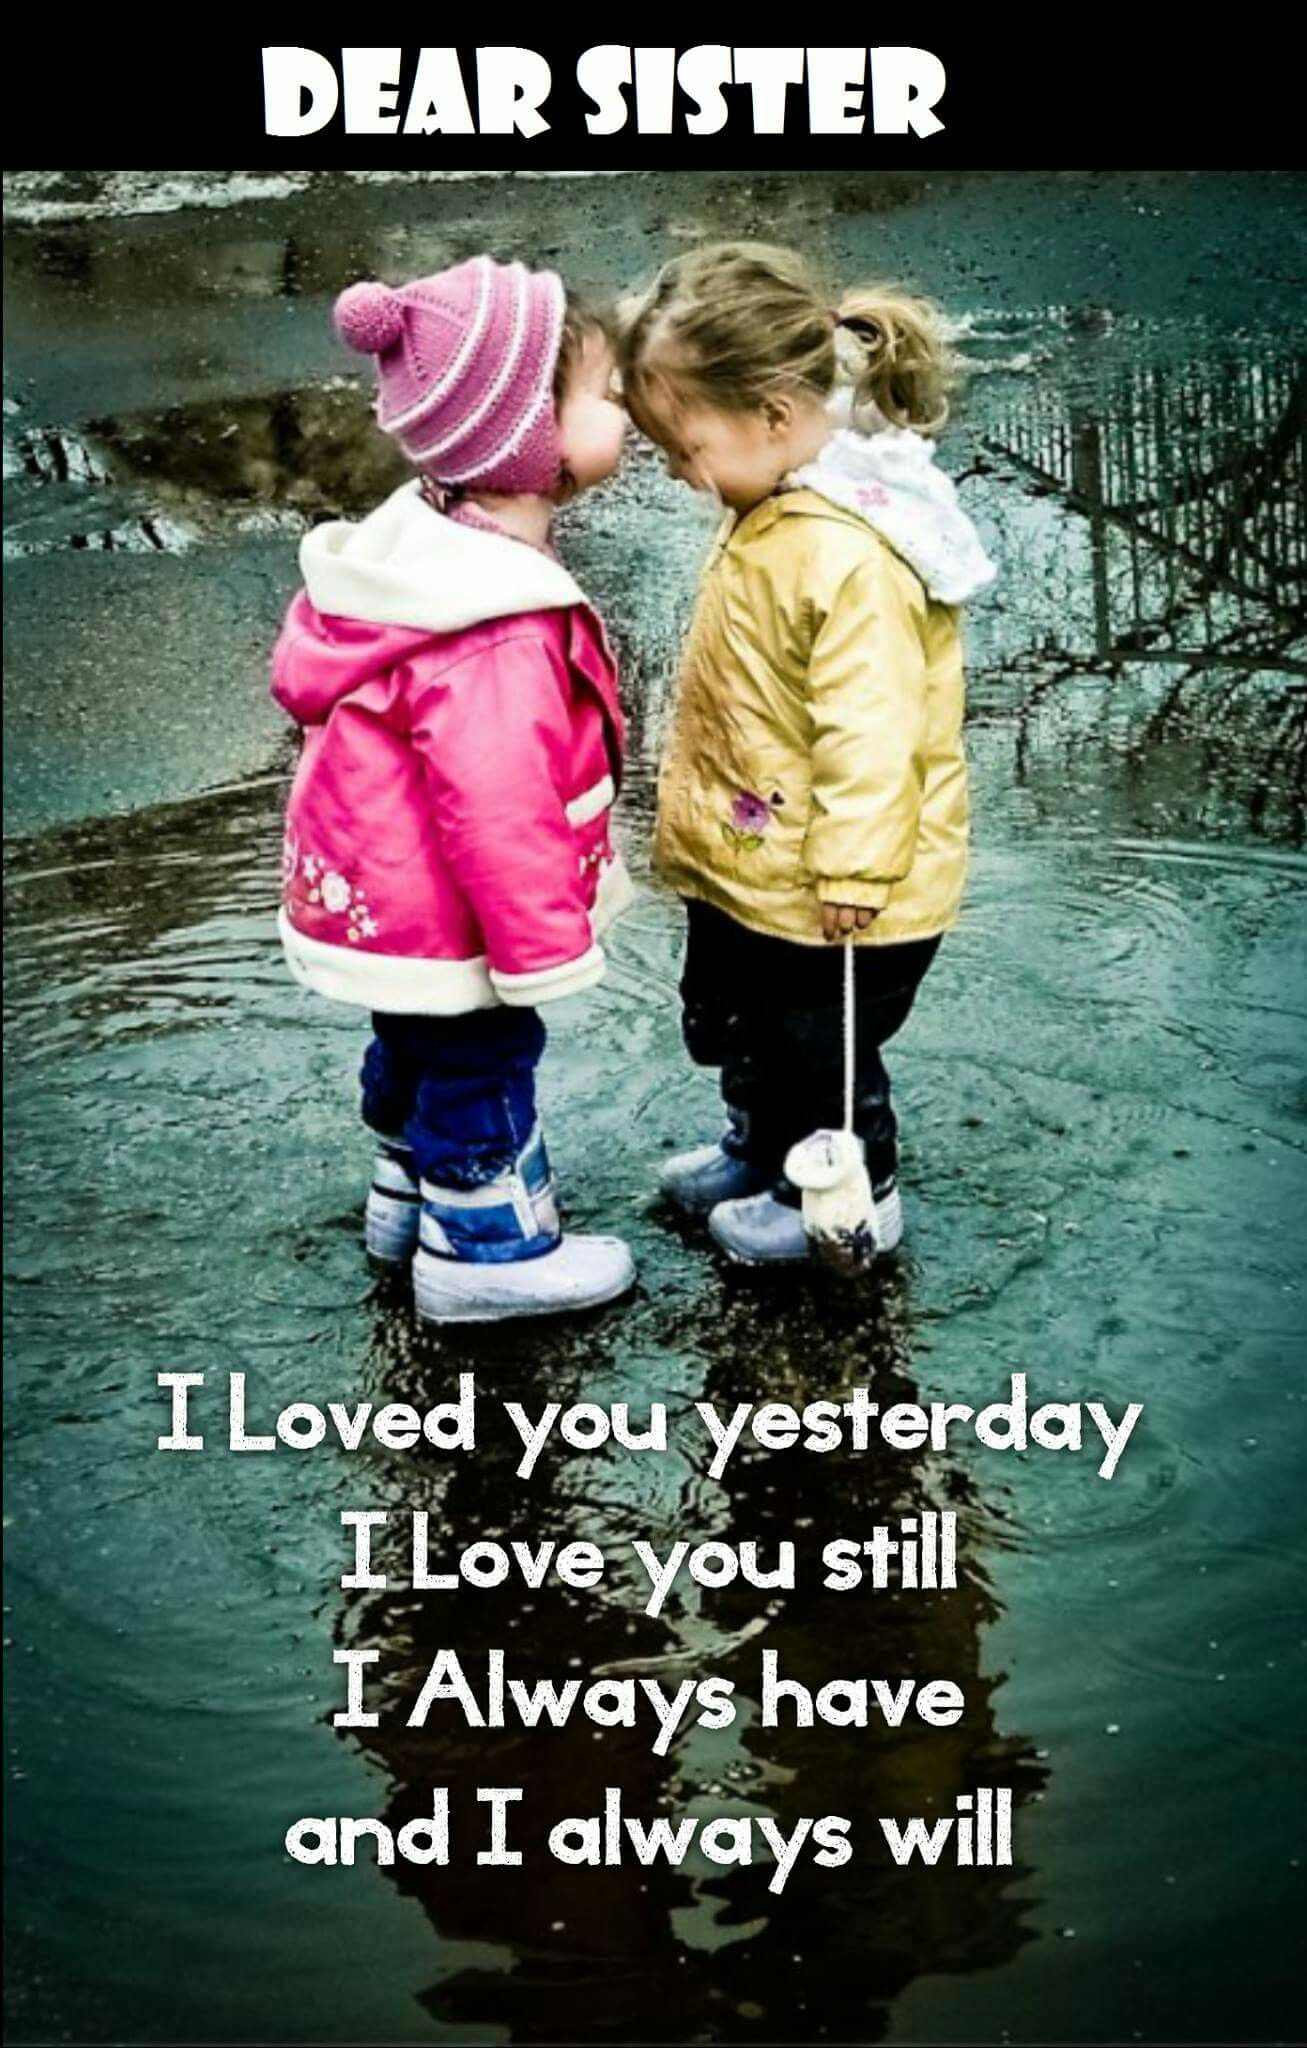 dear sister, i loved you yesterday i love you still i always have